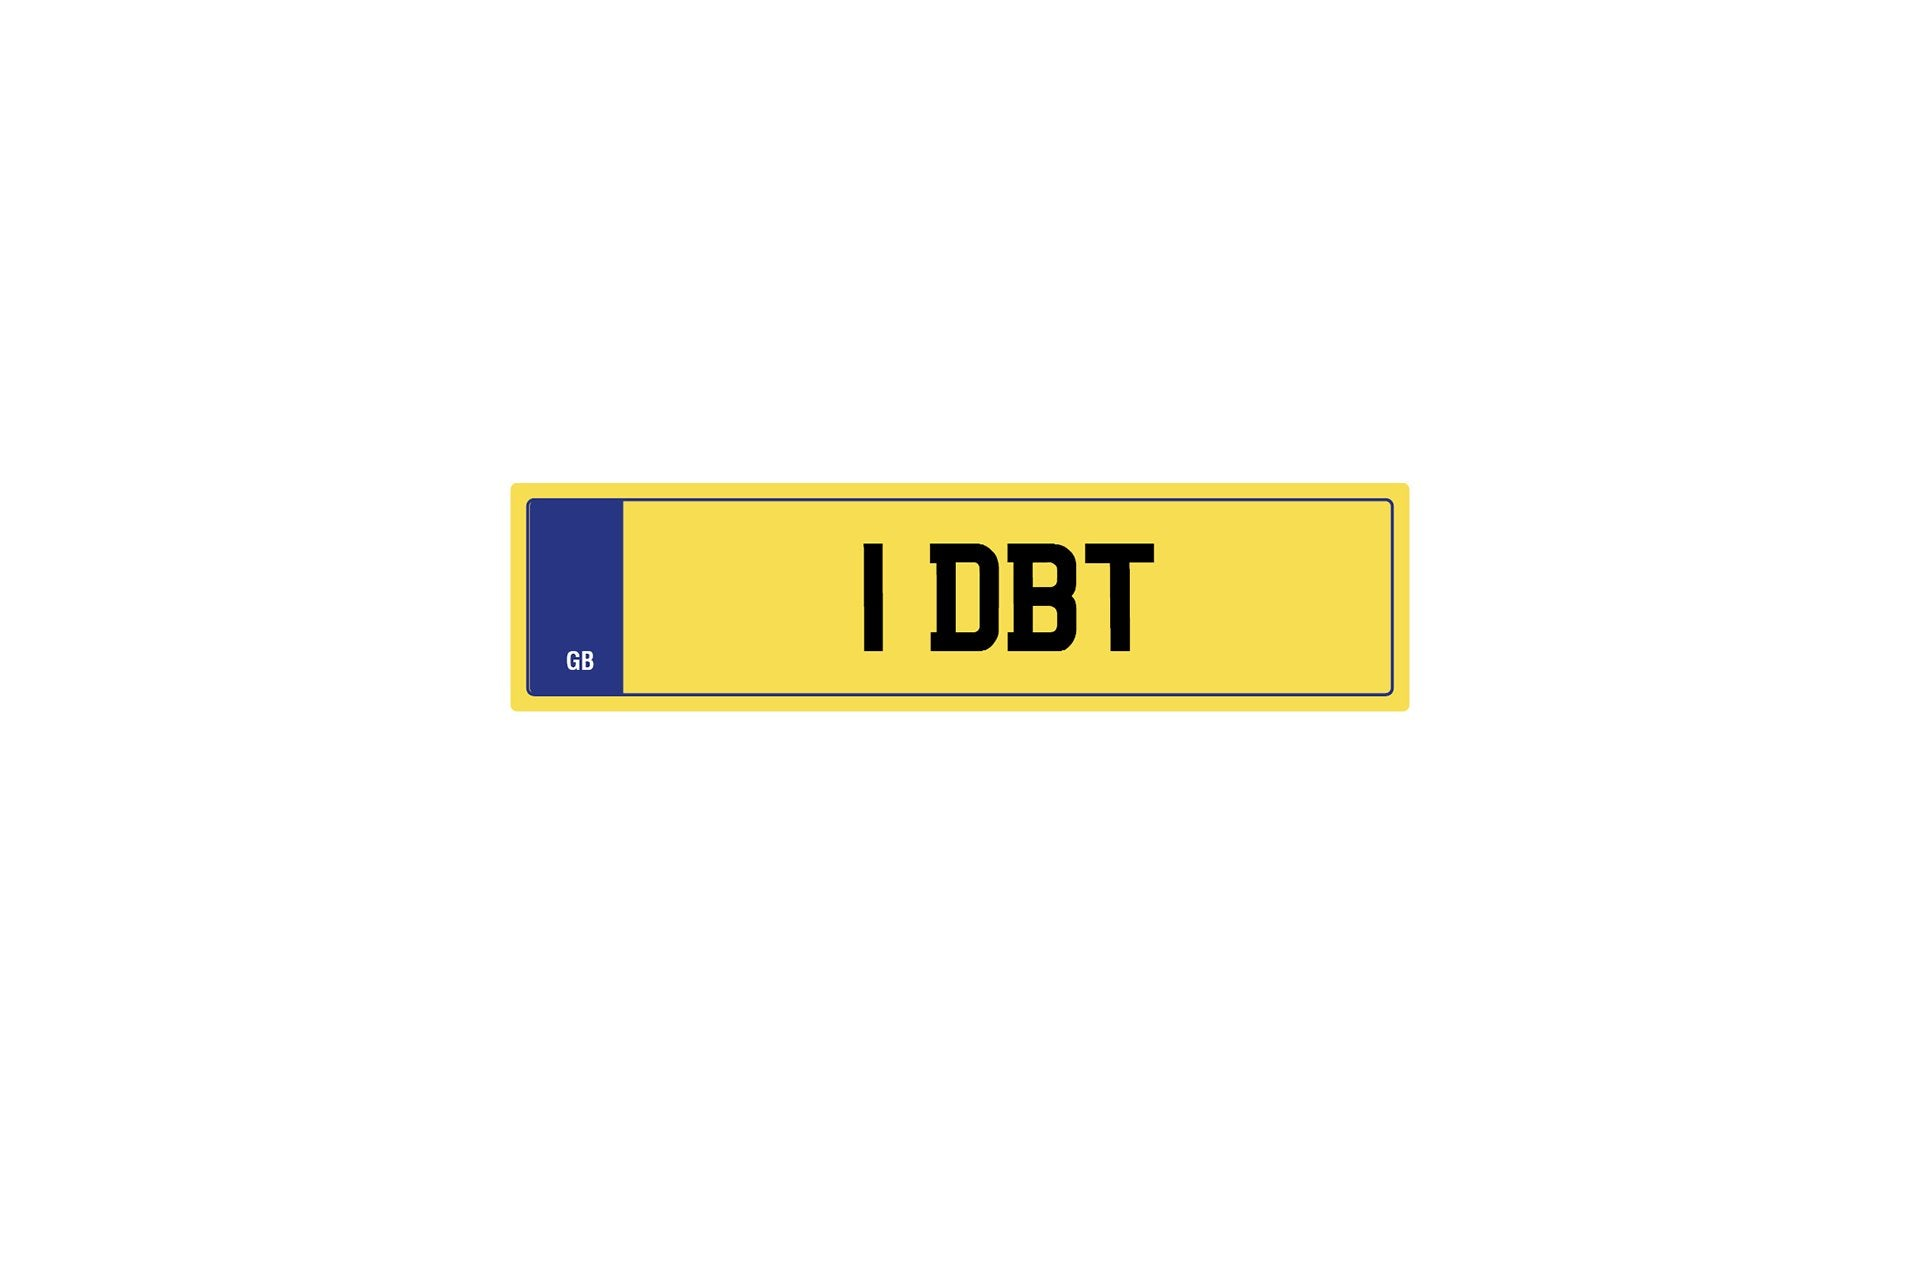 Private Plate 1 Dbt by Kahn - Image 263